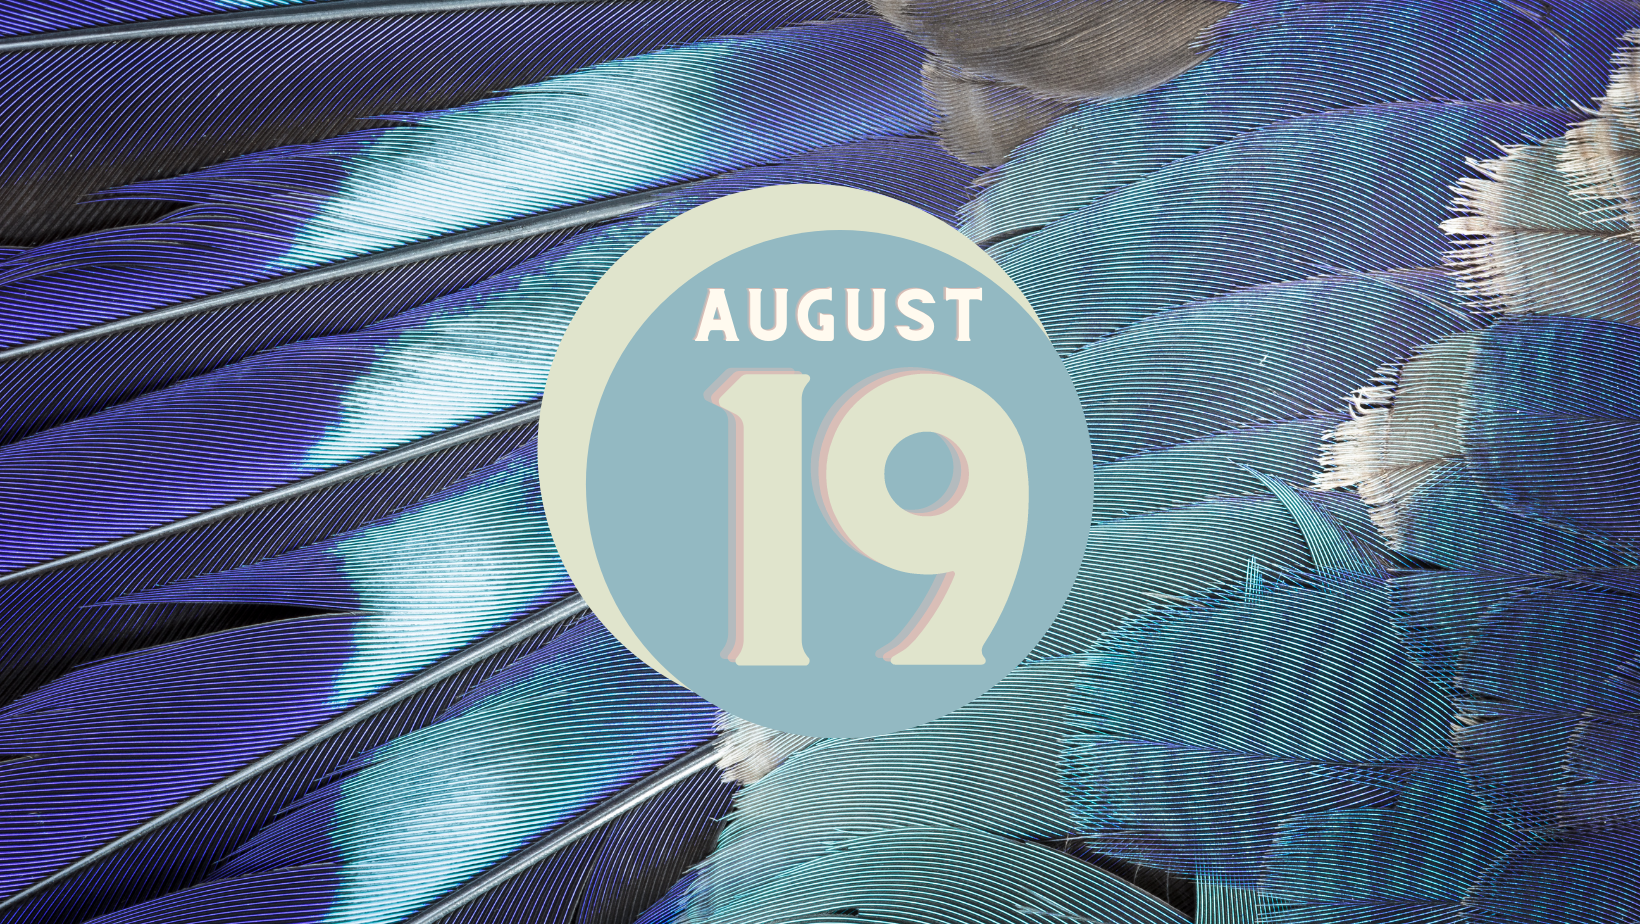 blue and grey feathers background, text reads August 19